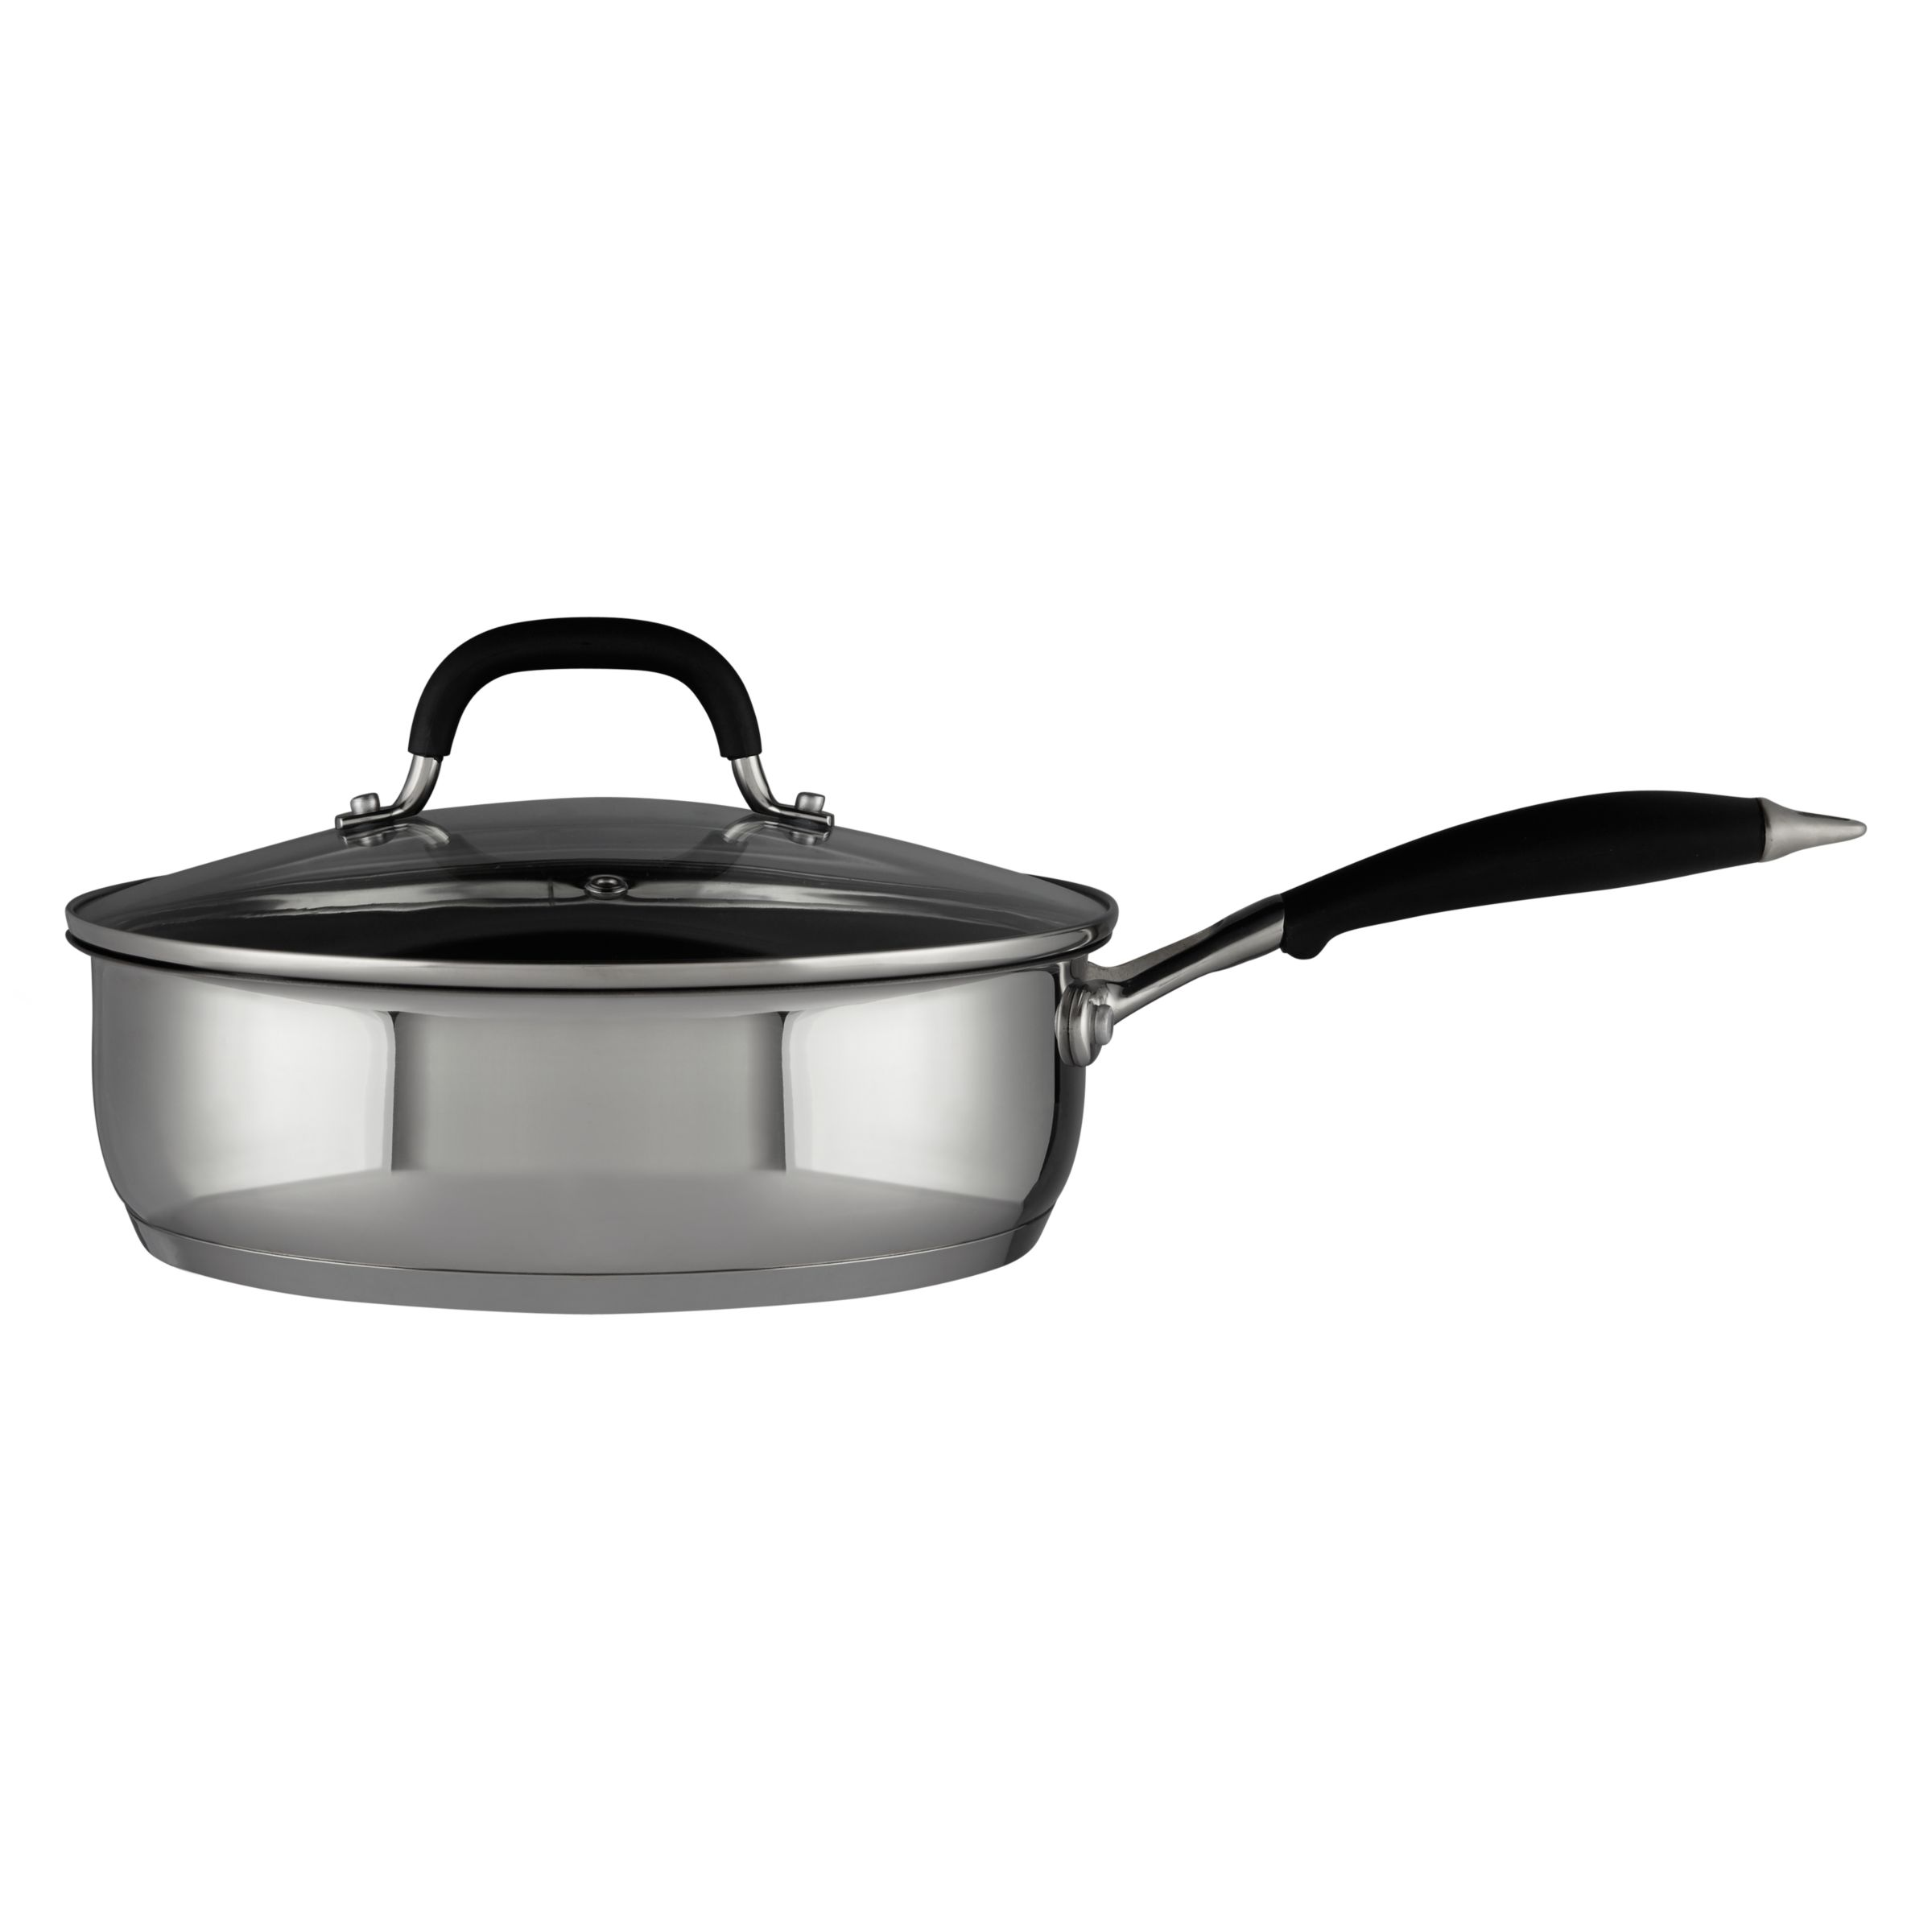 John Lewis & Partners 'The Pan' Stainless Steel Lidded Non-Stick Saute Pan, 24cm